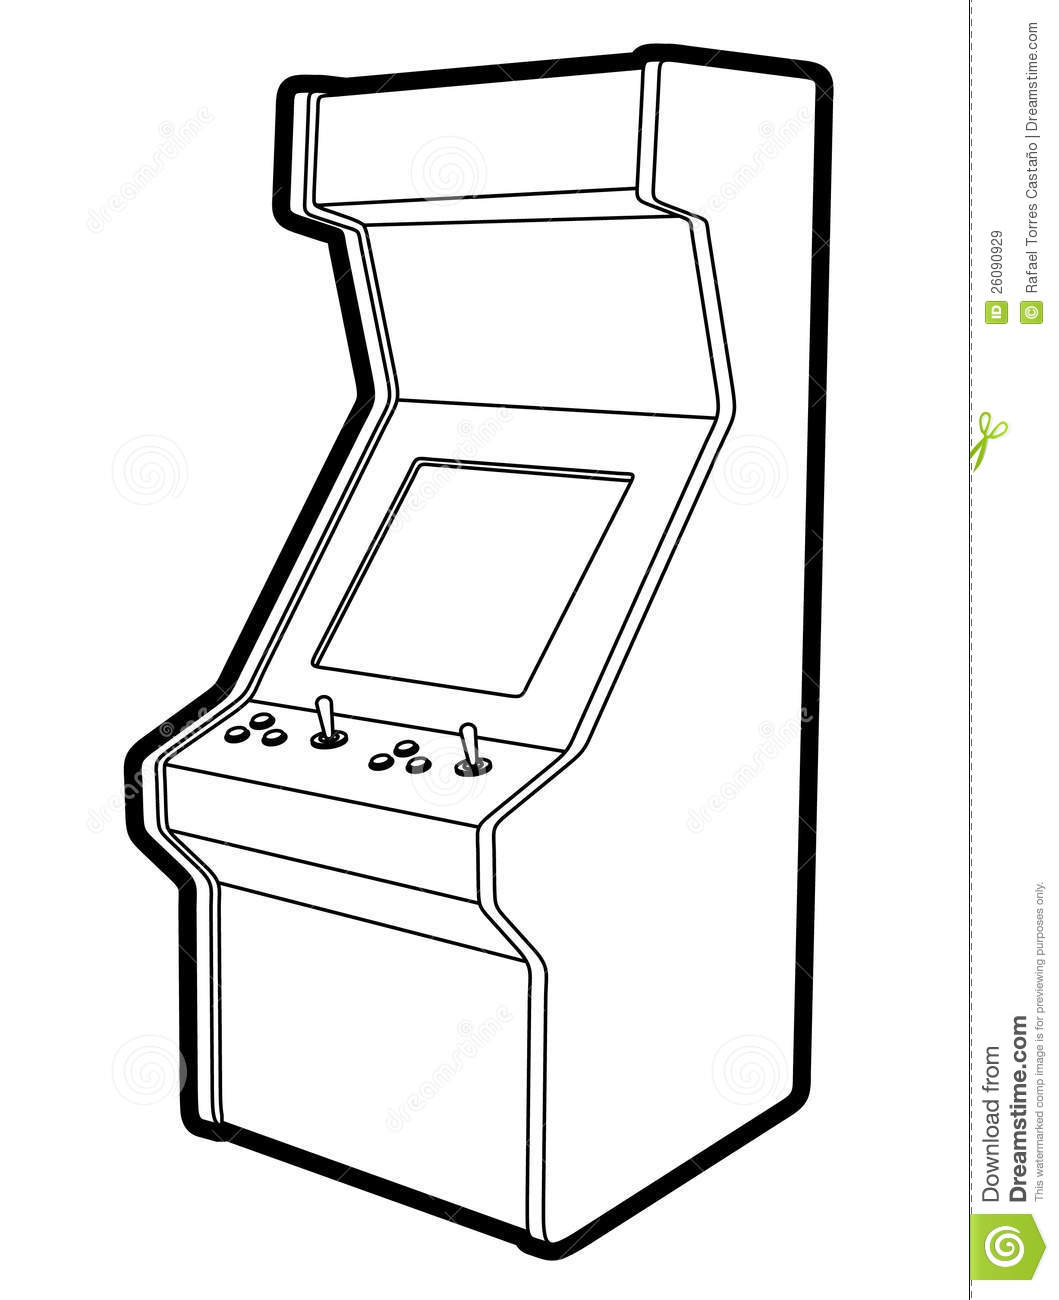 Vector Drawing Lines Game : Retro game machine stock vector illustration of